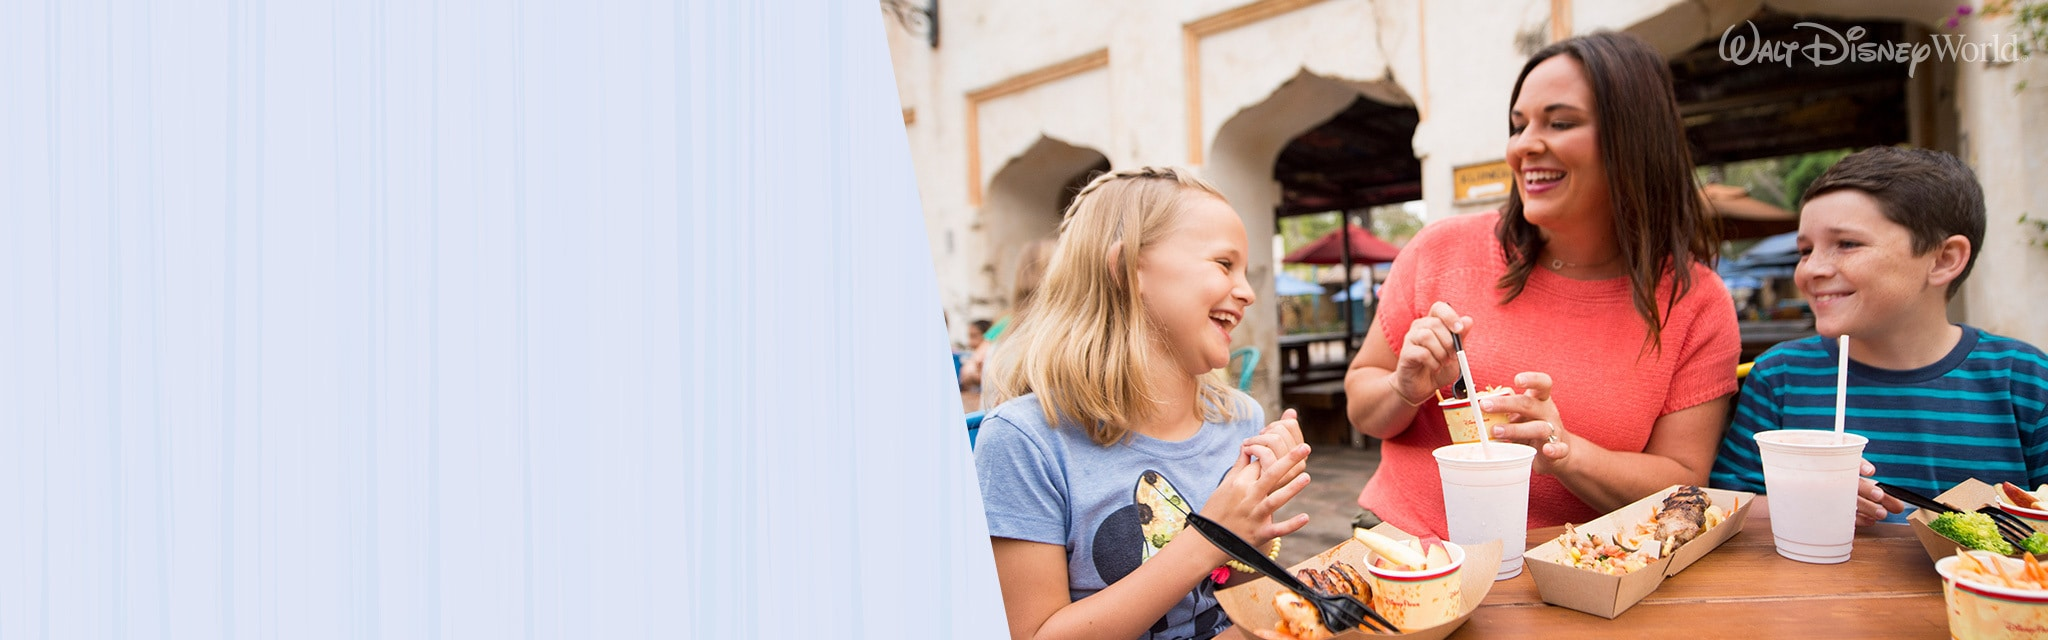 Disney Parks - WDW | FY17 Q4 Domestic Free Dine Offer - Hero